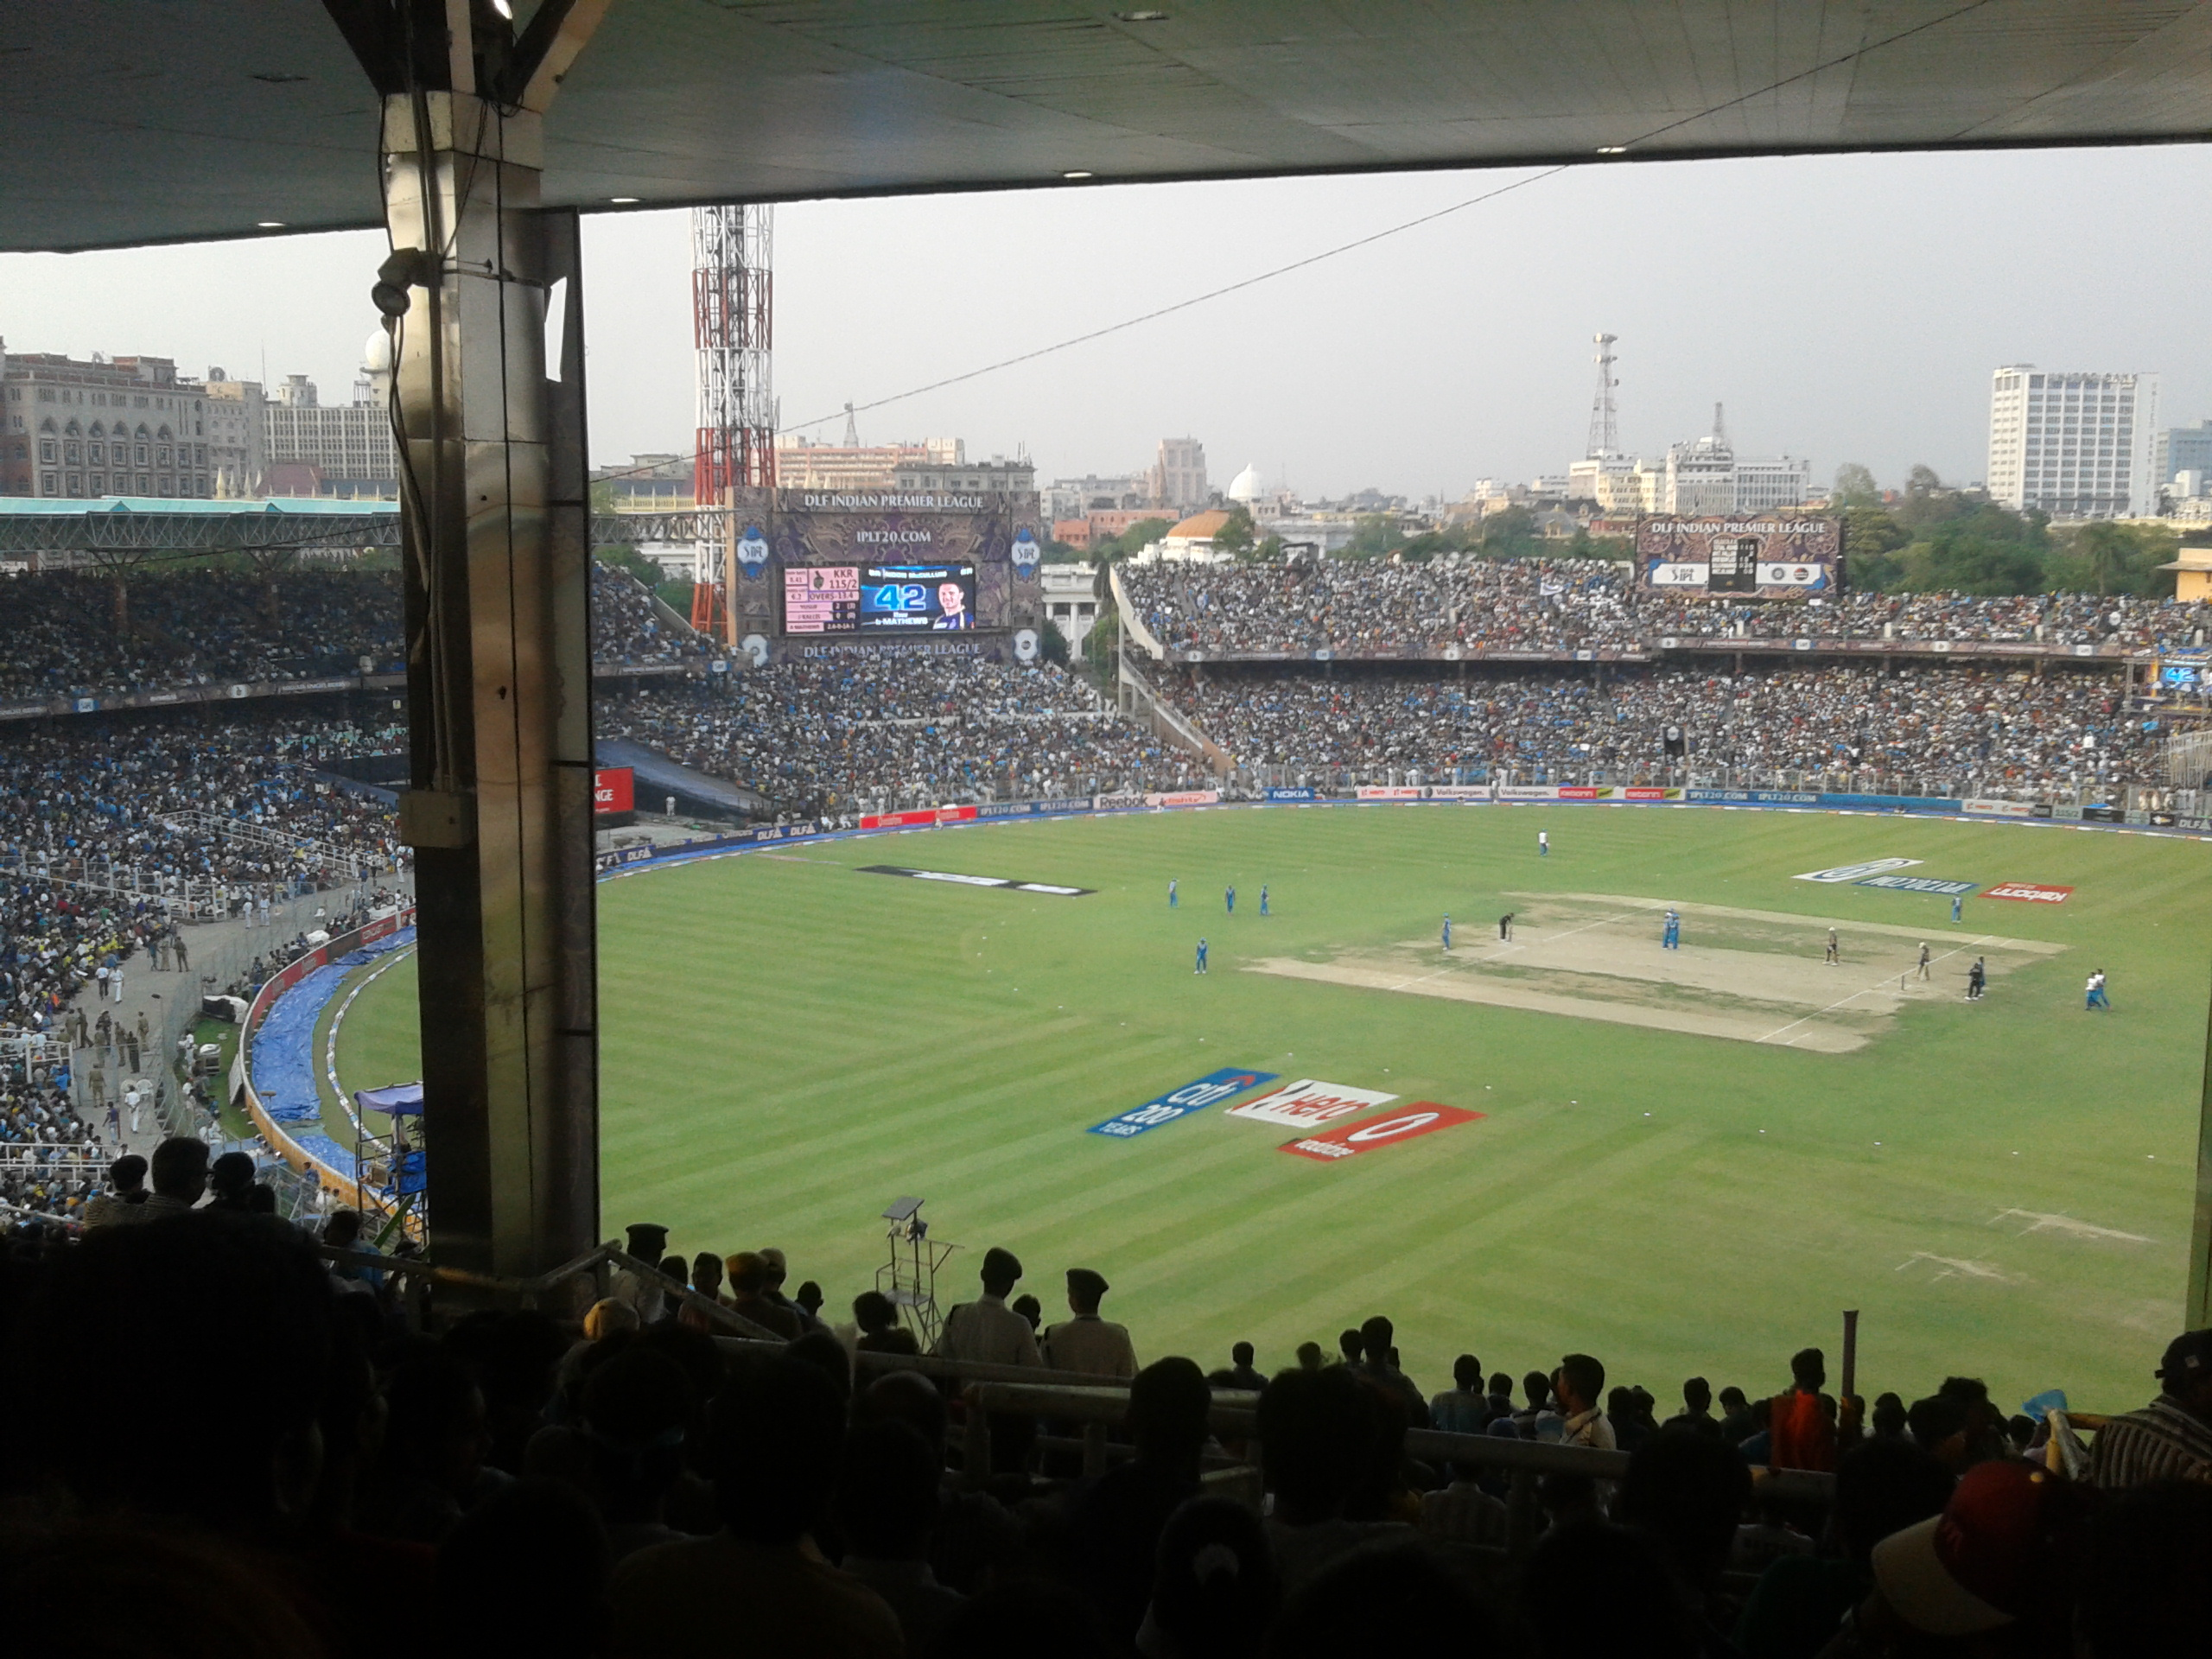 A Twenty20 cricket match between Kolkata Knight Riders and Pune Warriors during Indian Premier League 2012